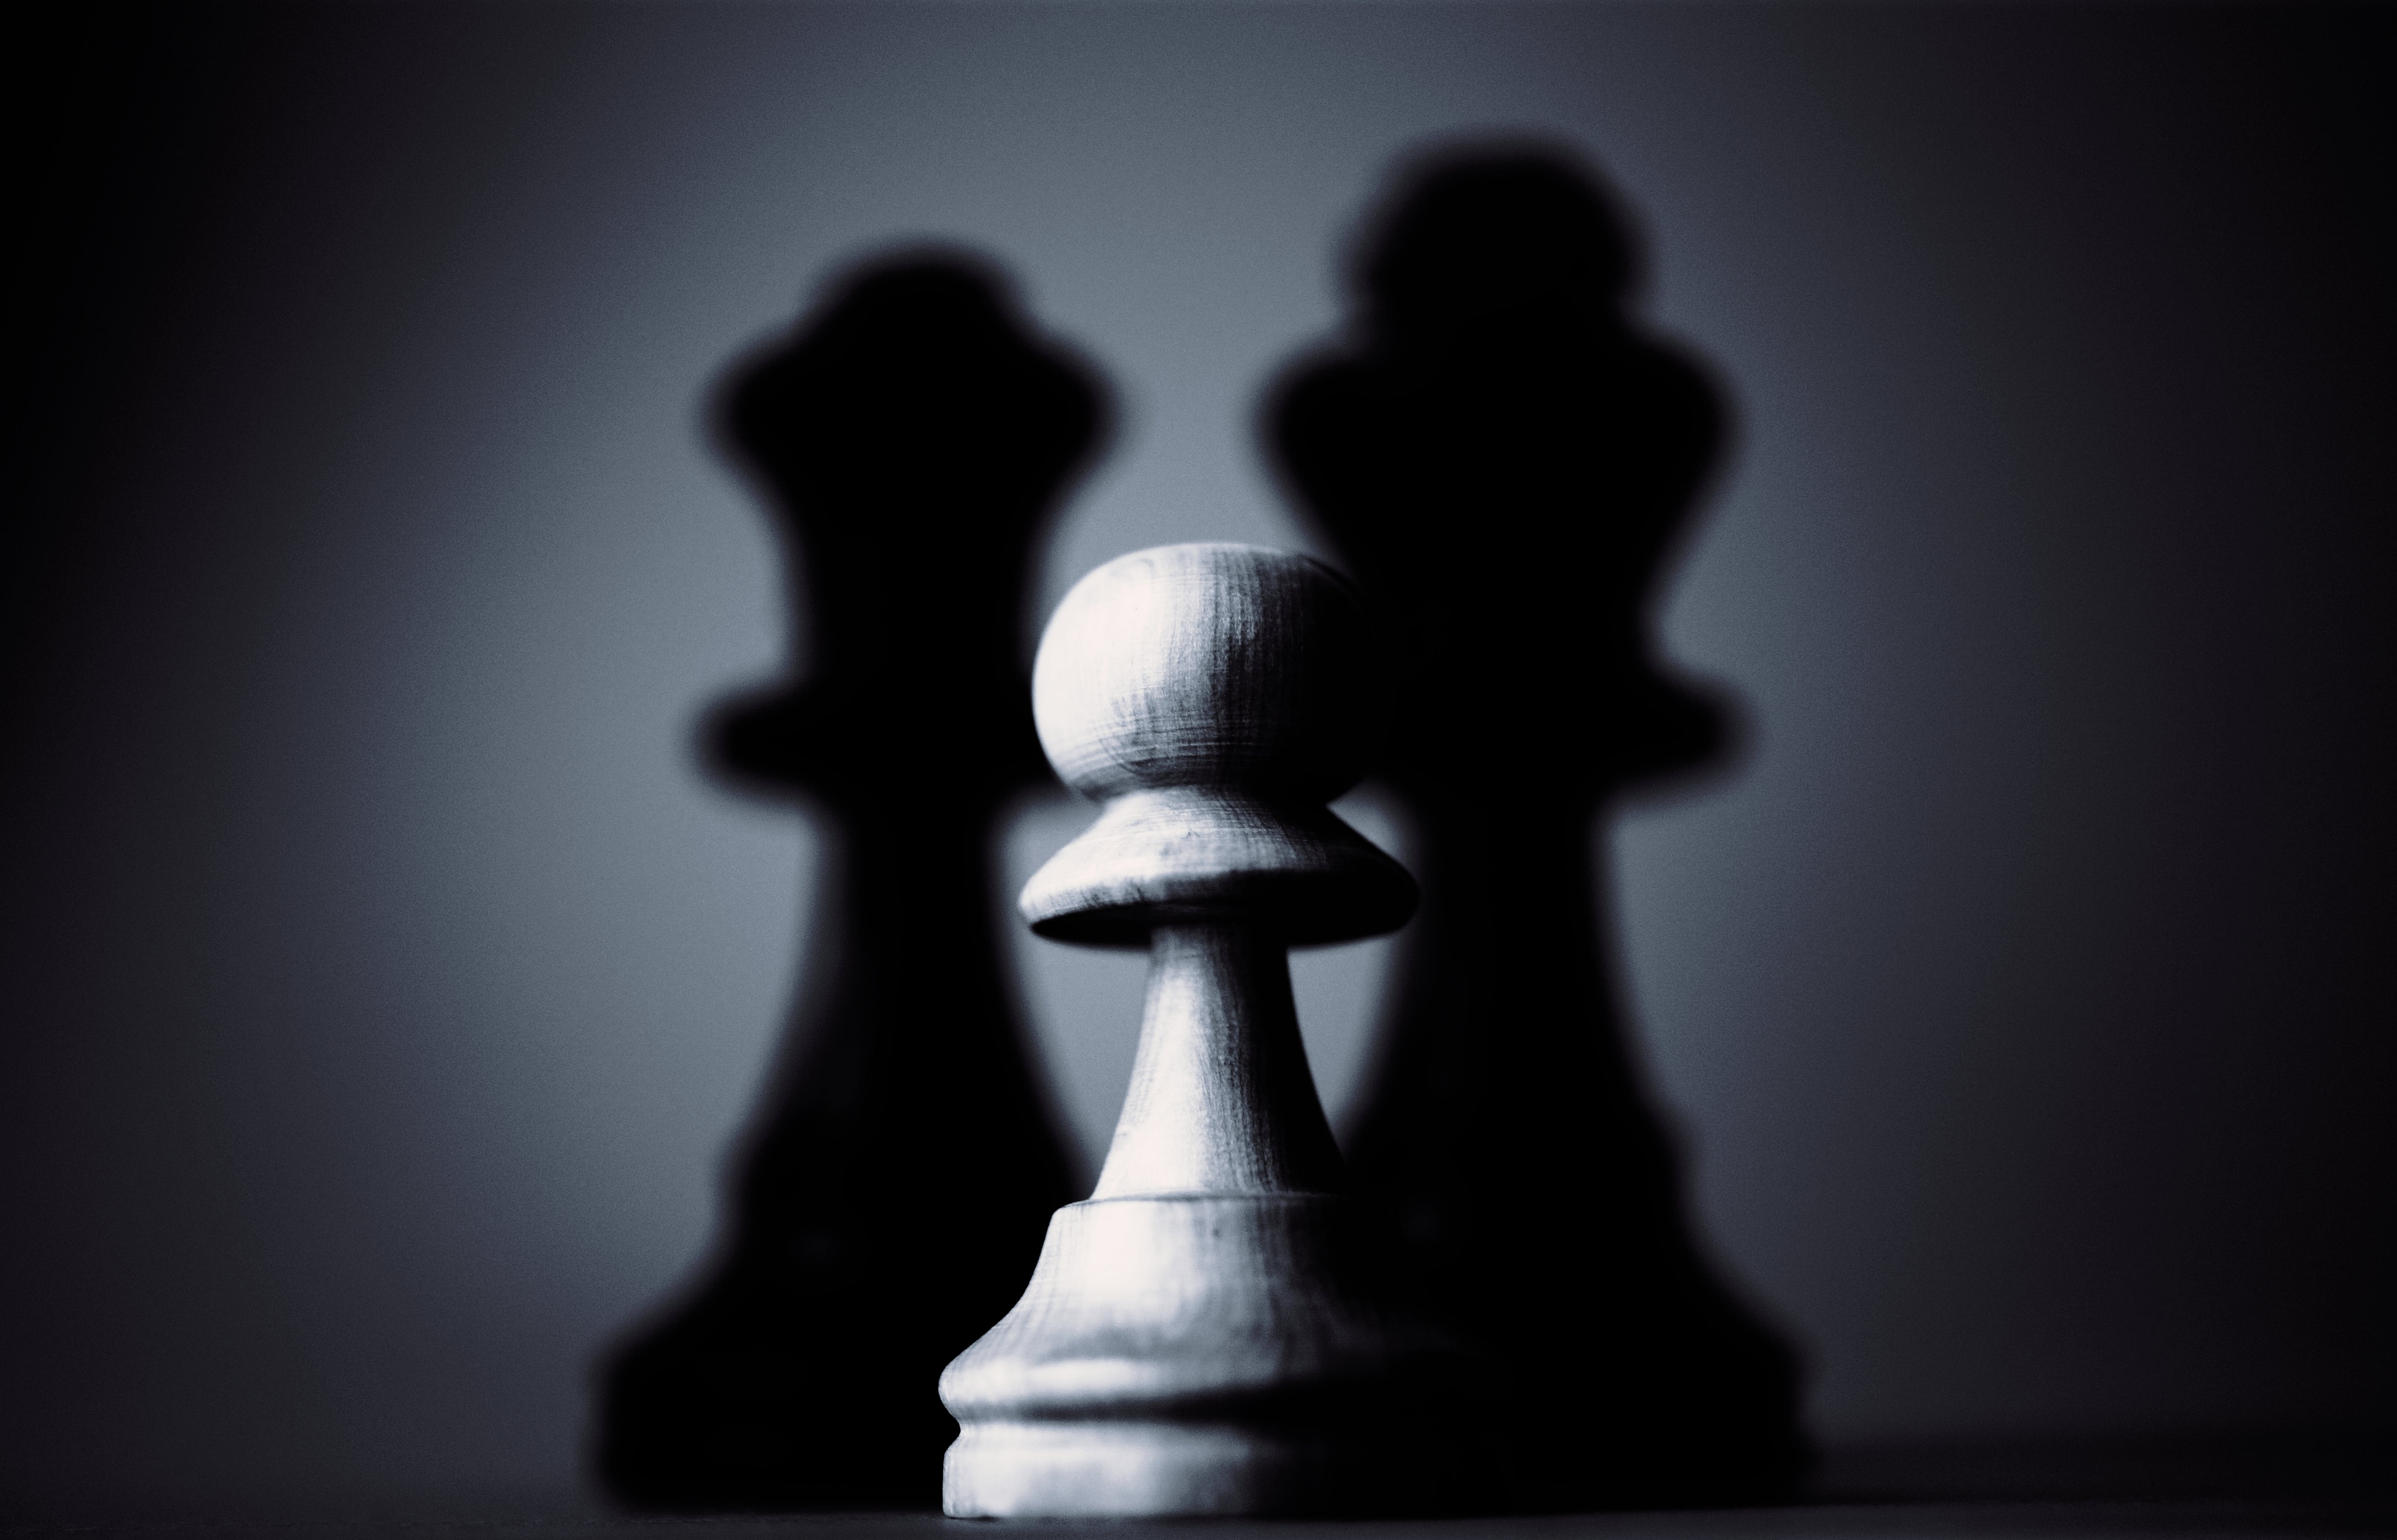 Chess pieces following each other.